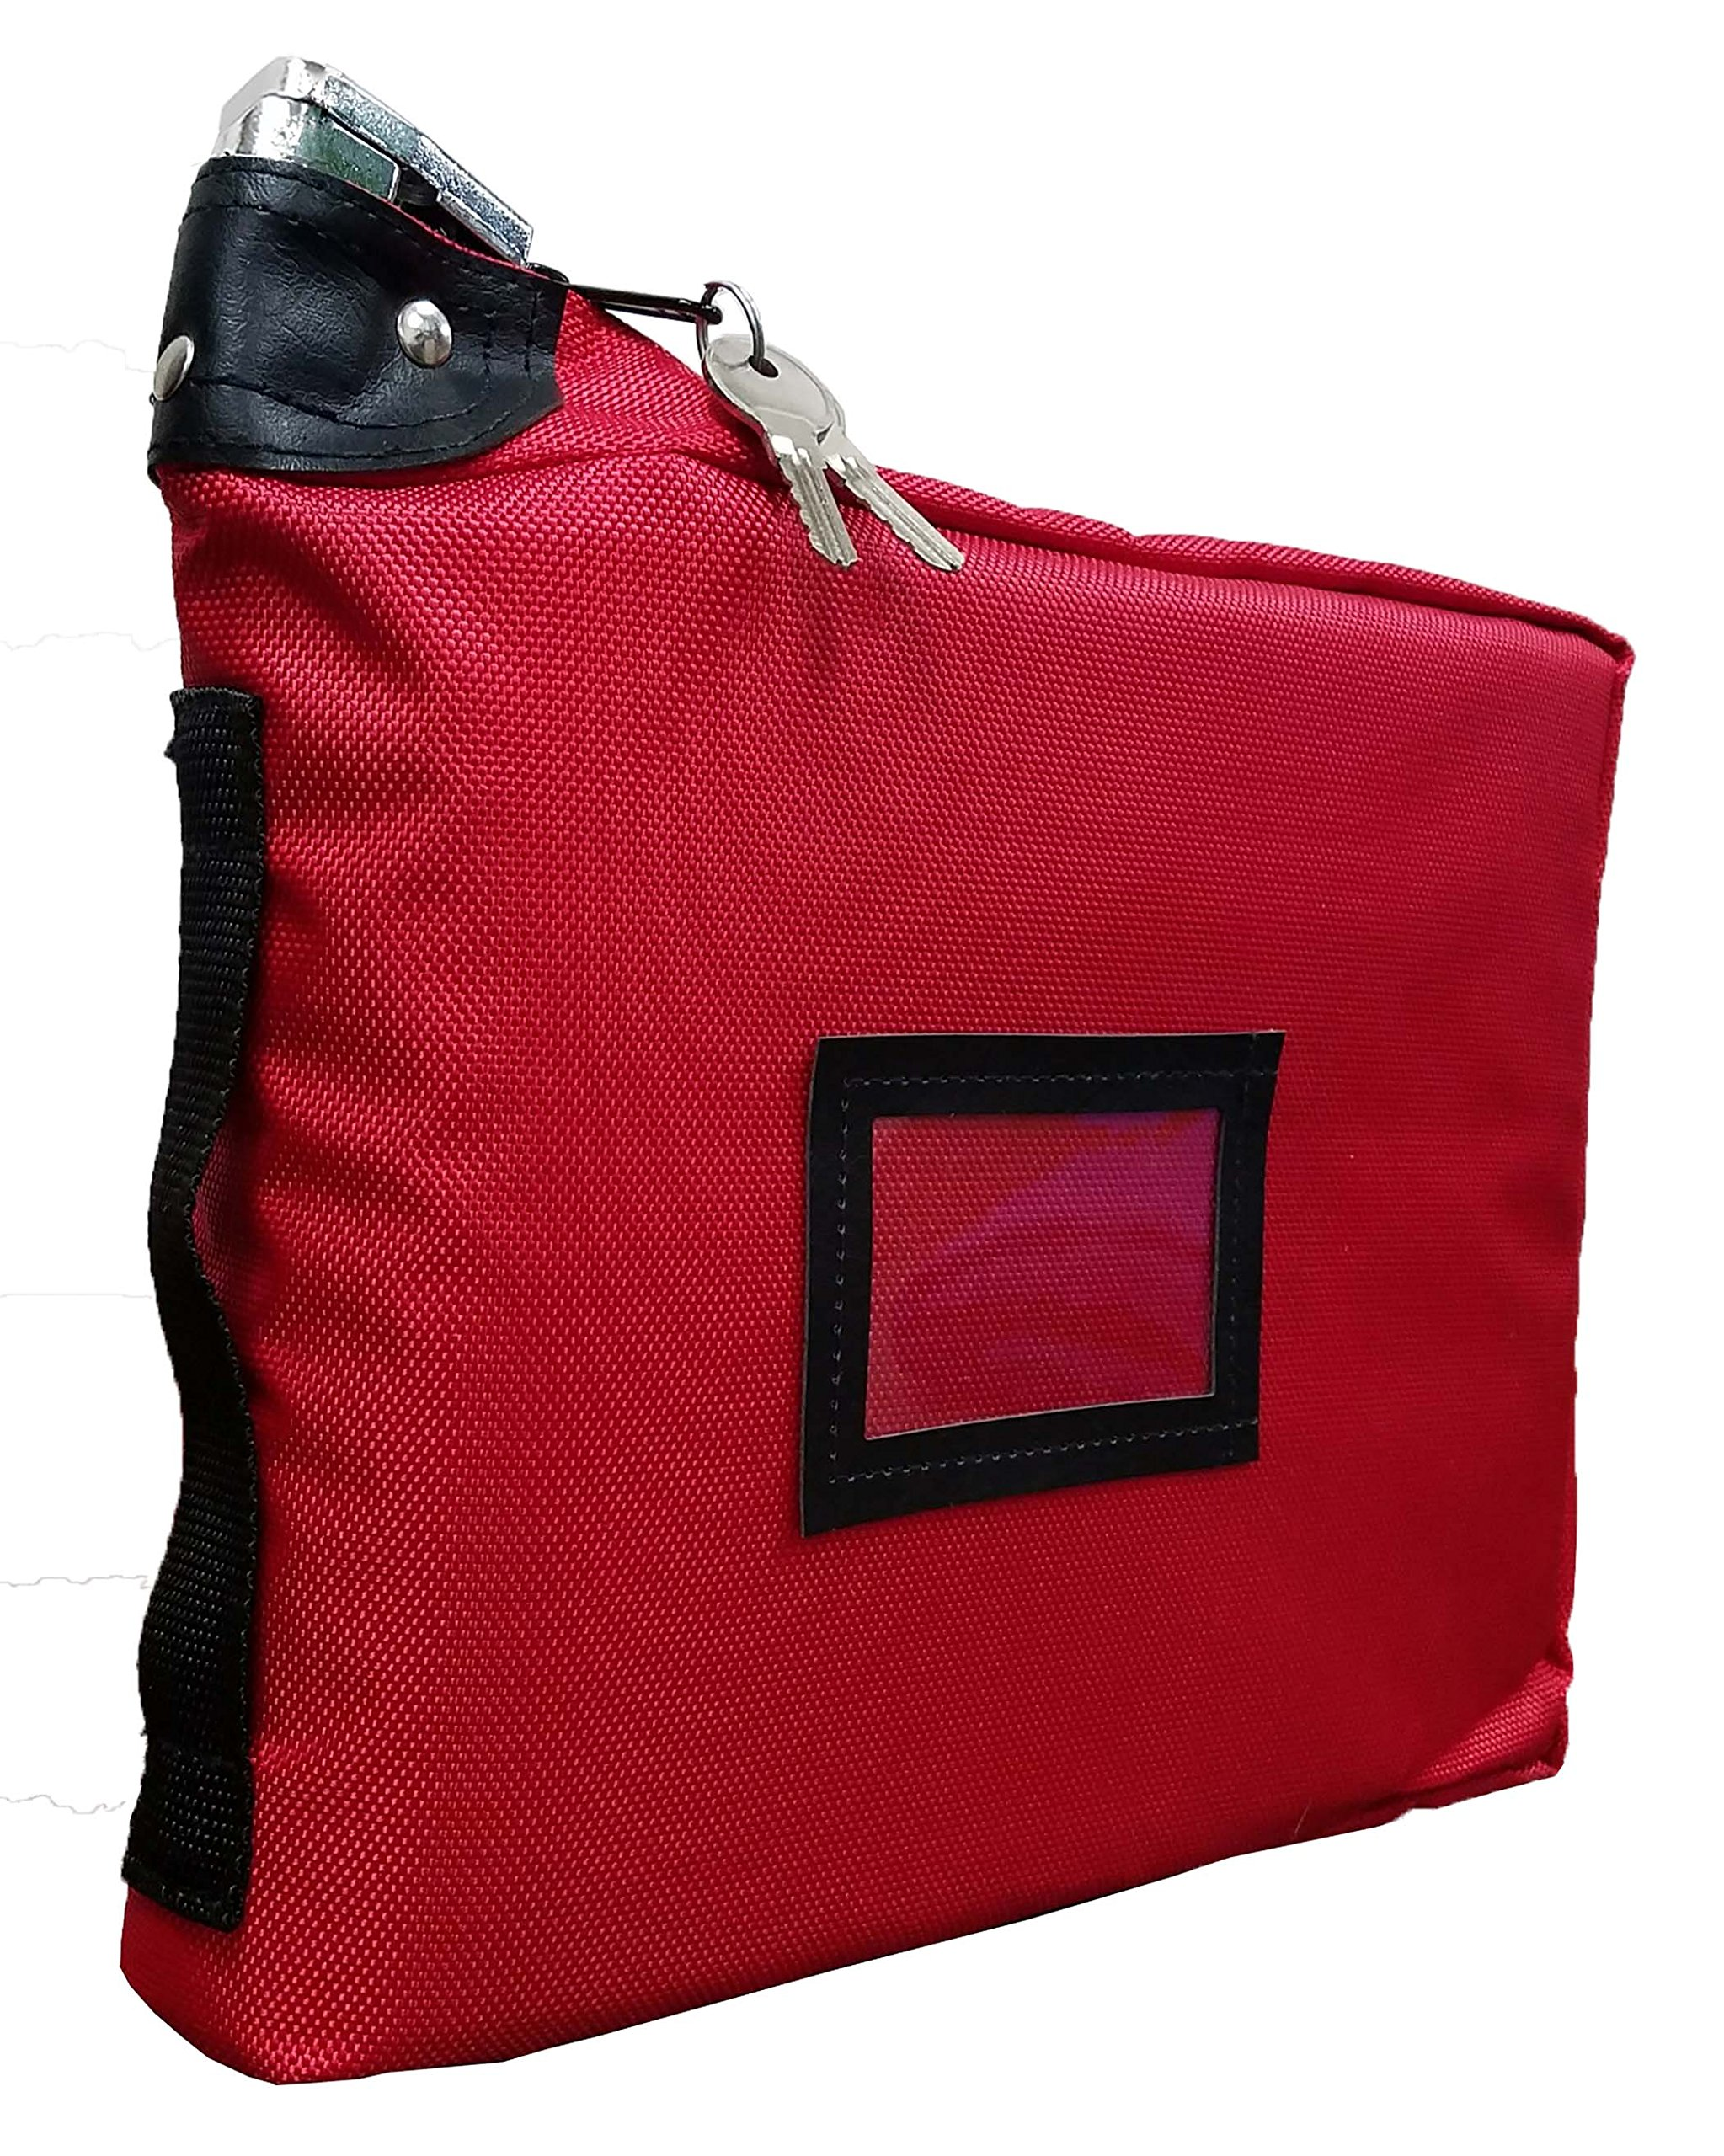 Prescription Medication Bag Standard Lock Travel Case (Red)